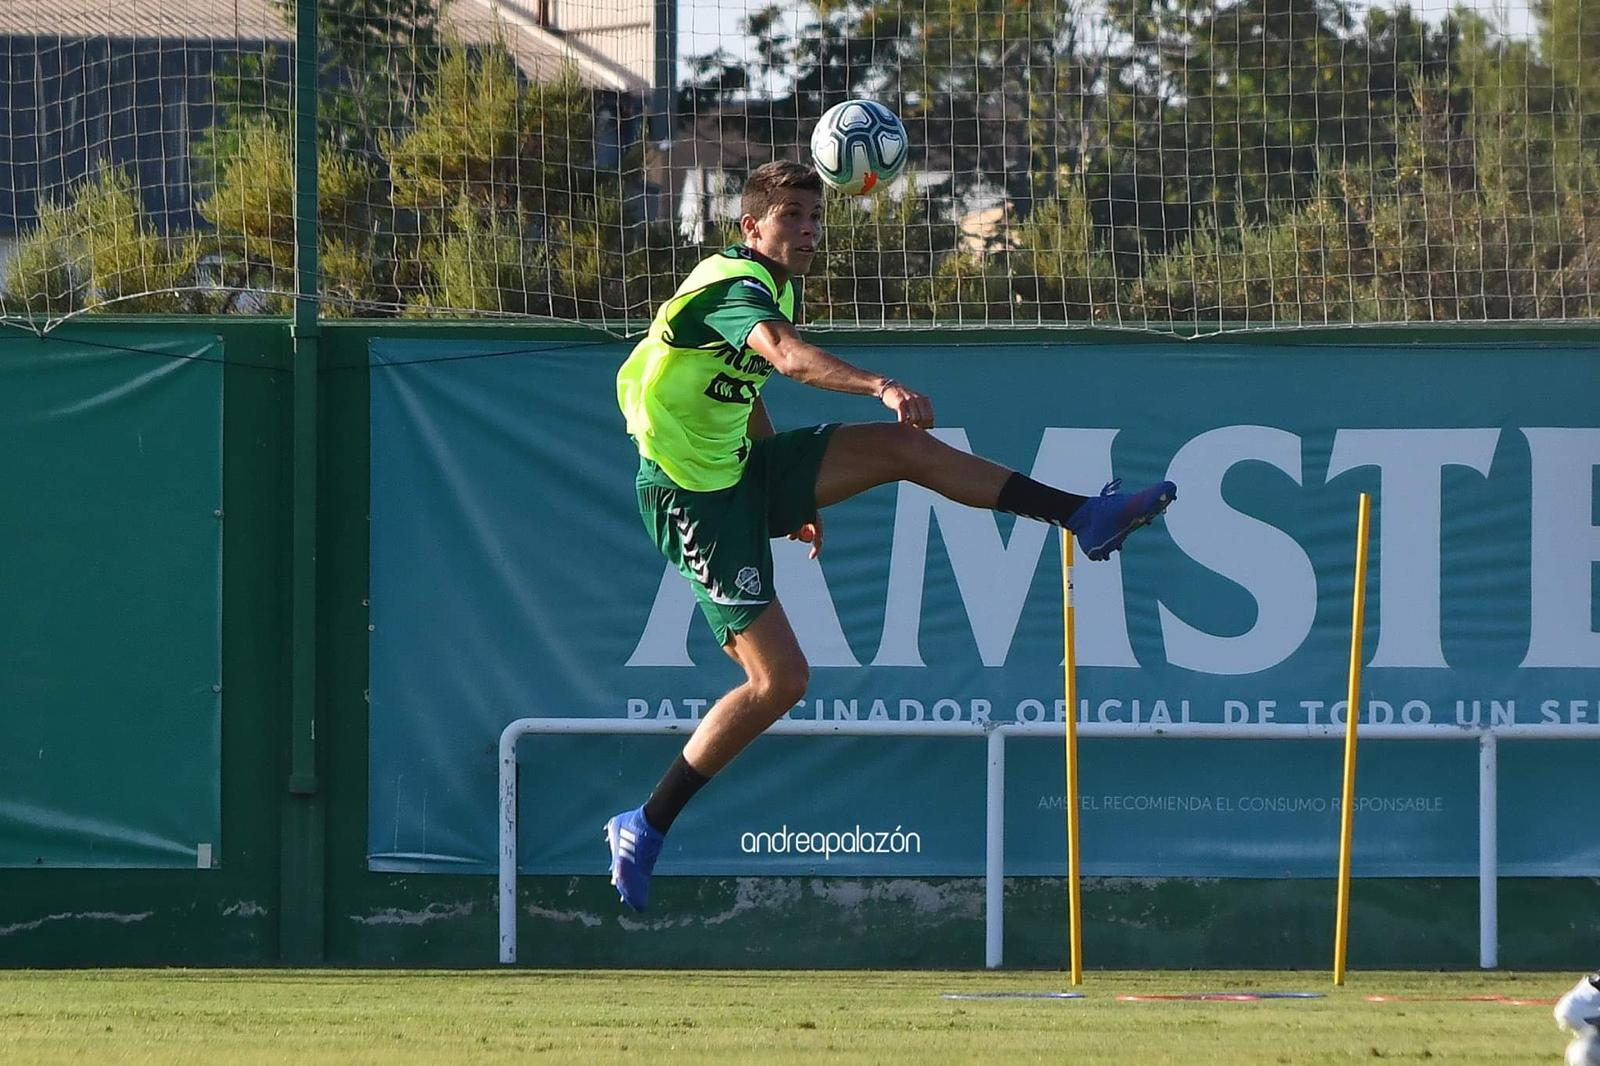 Felipe training with Elche's first team, signing up to our Spanish football academy could earn you a pro football trial